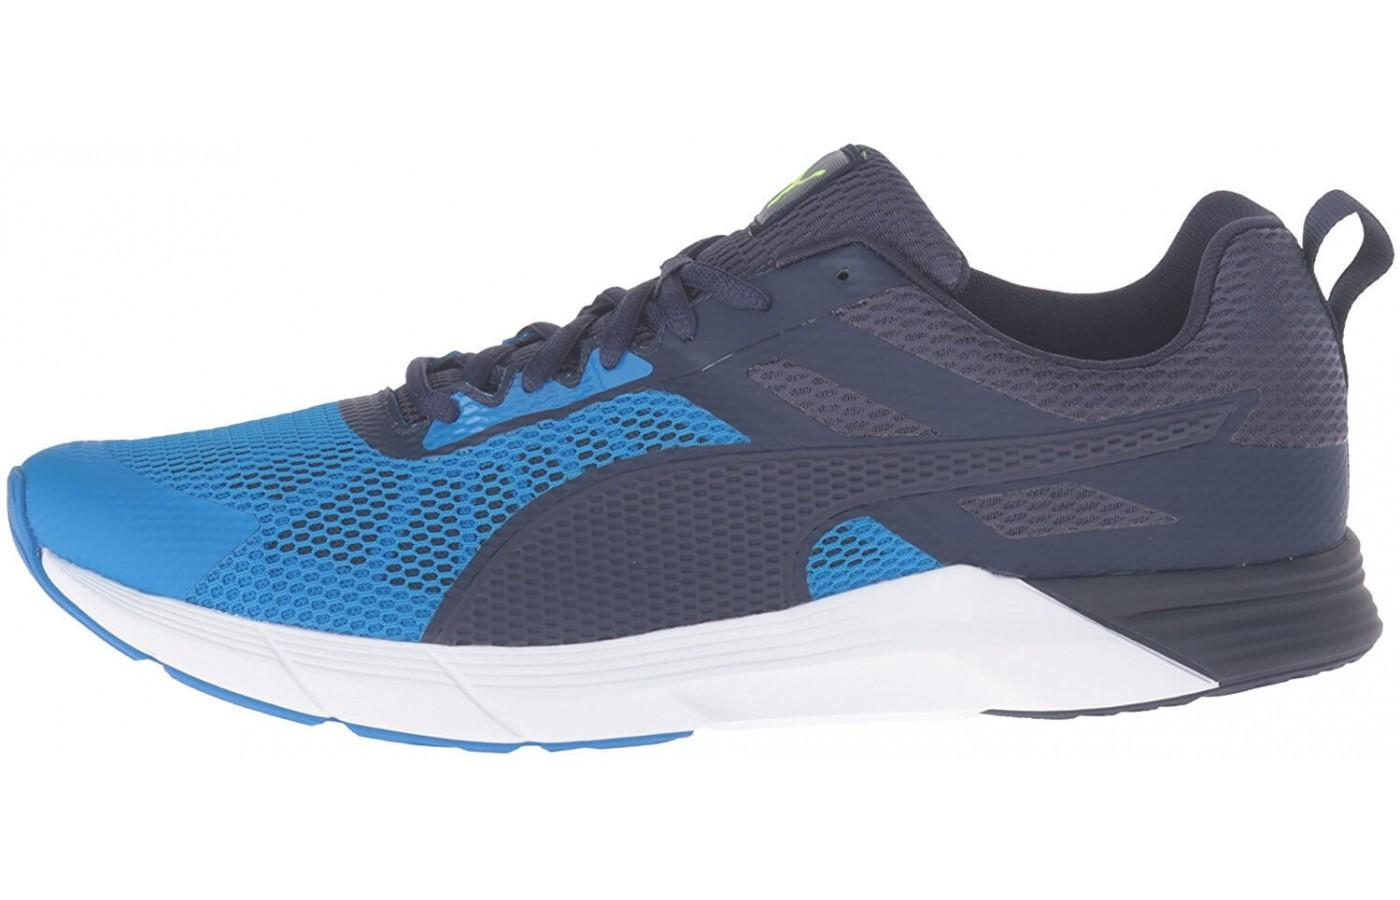 the Puma Propel has two layers of mesh